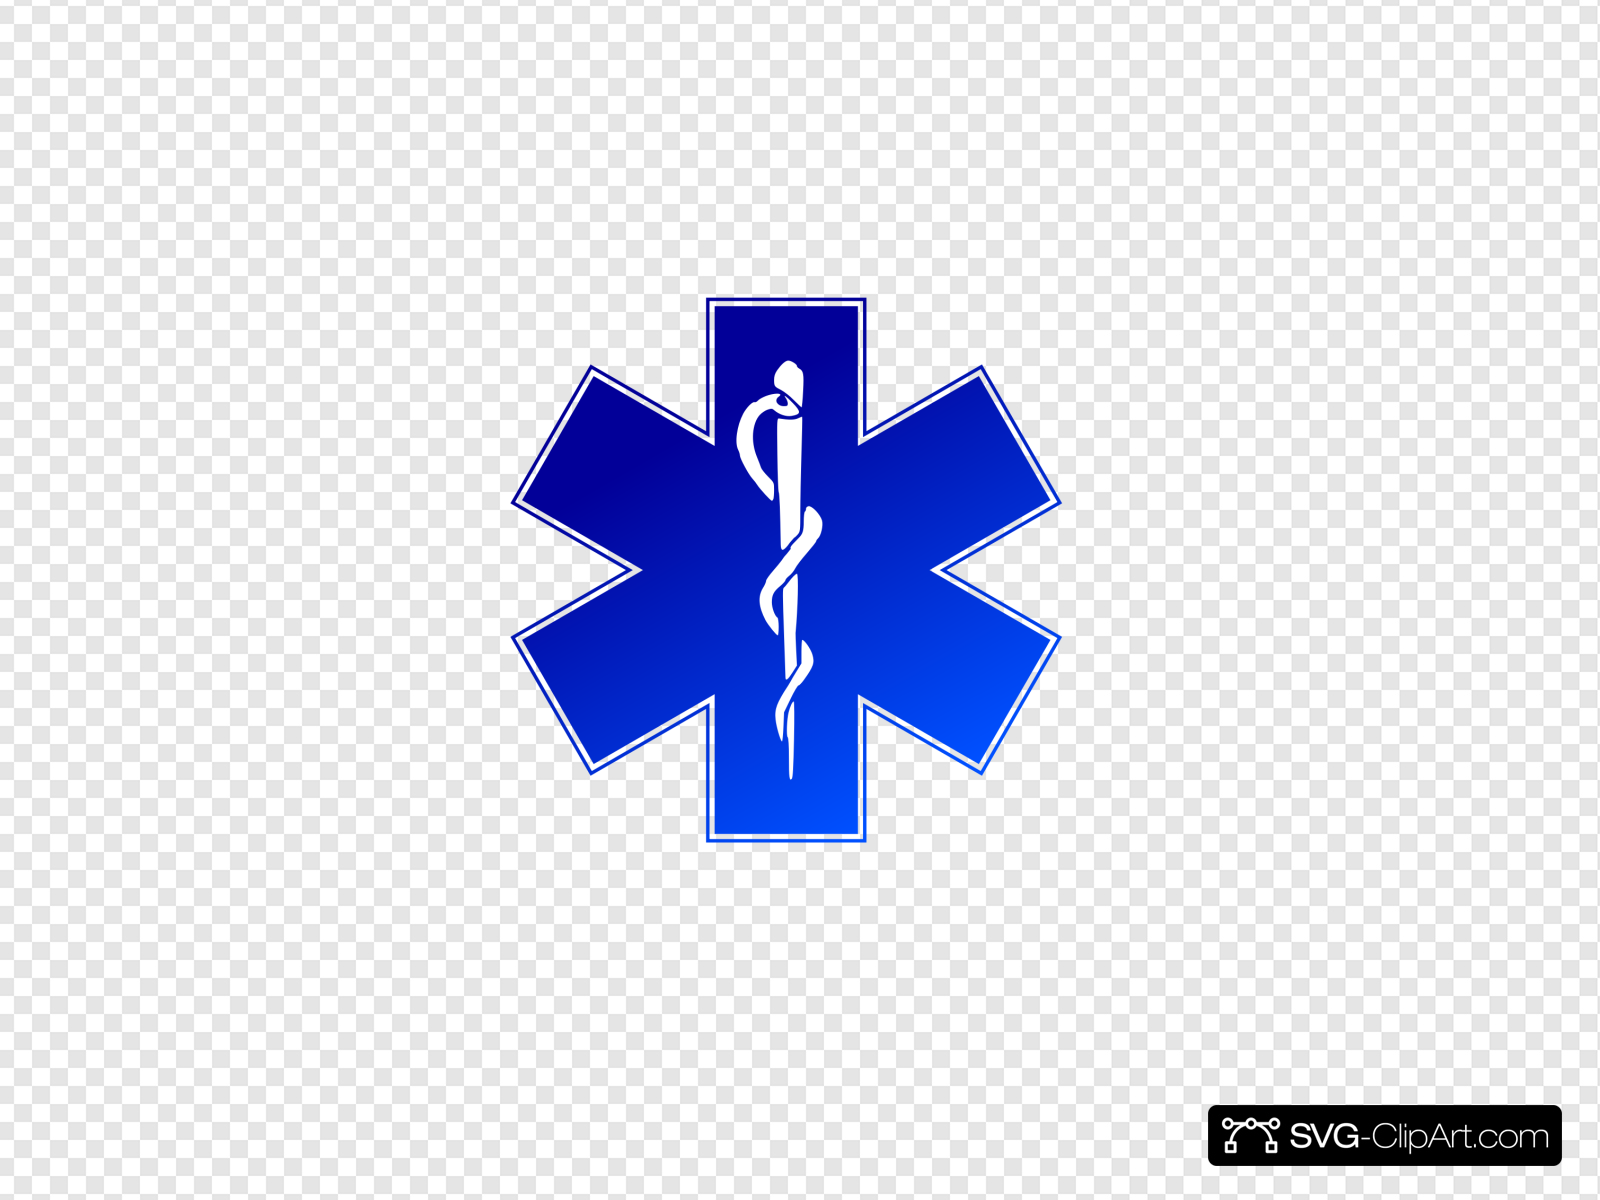 Ems Emergency Medical Service Logo Clip art, Icon and SVG.